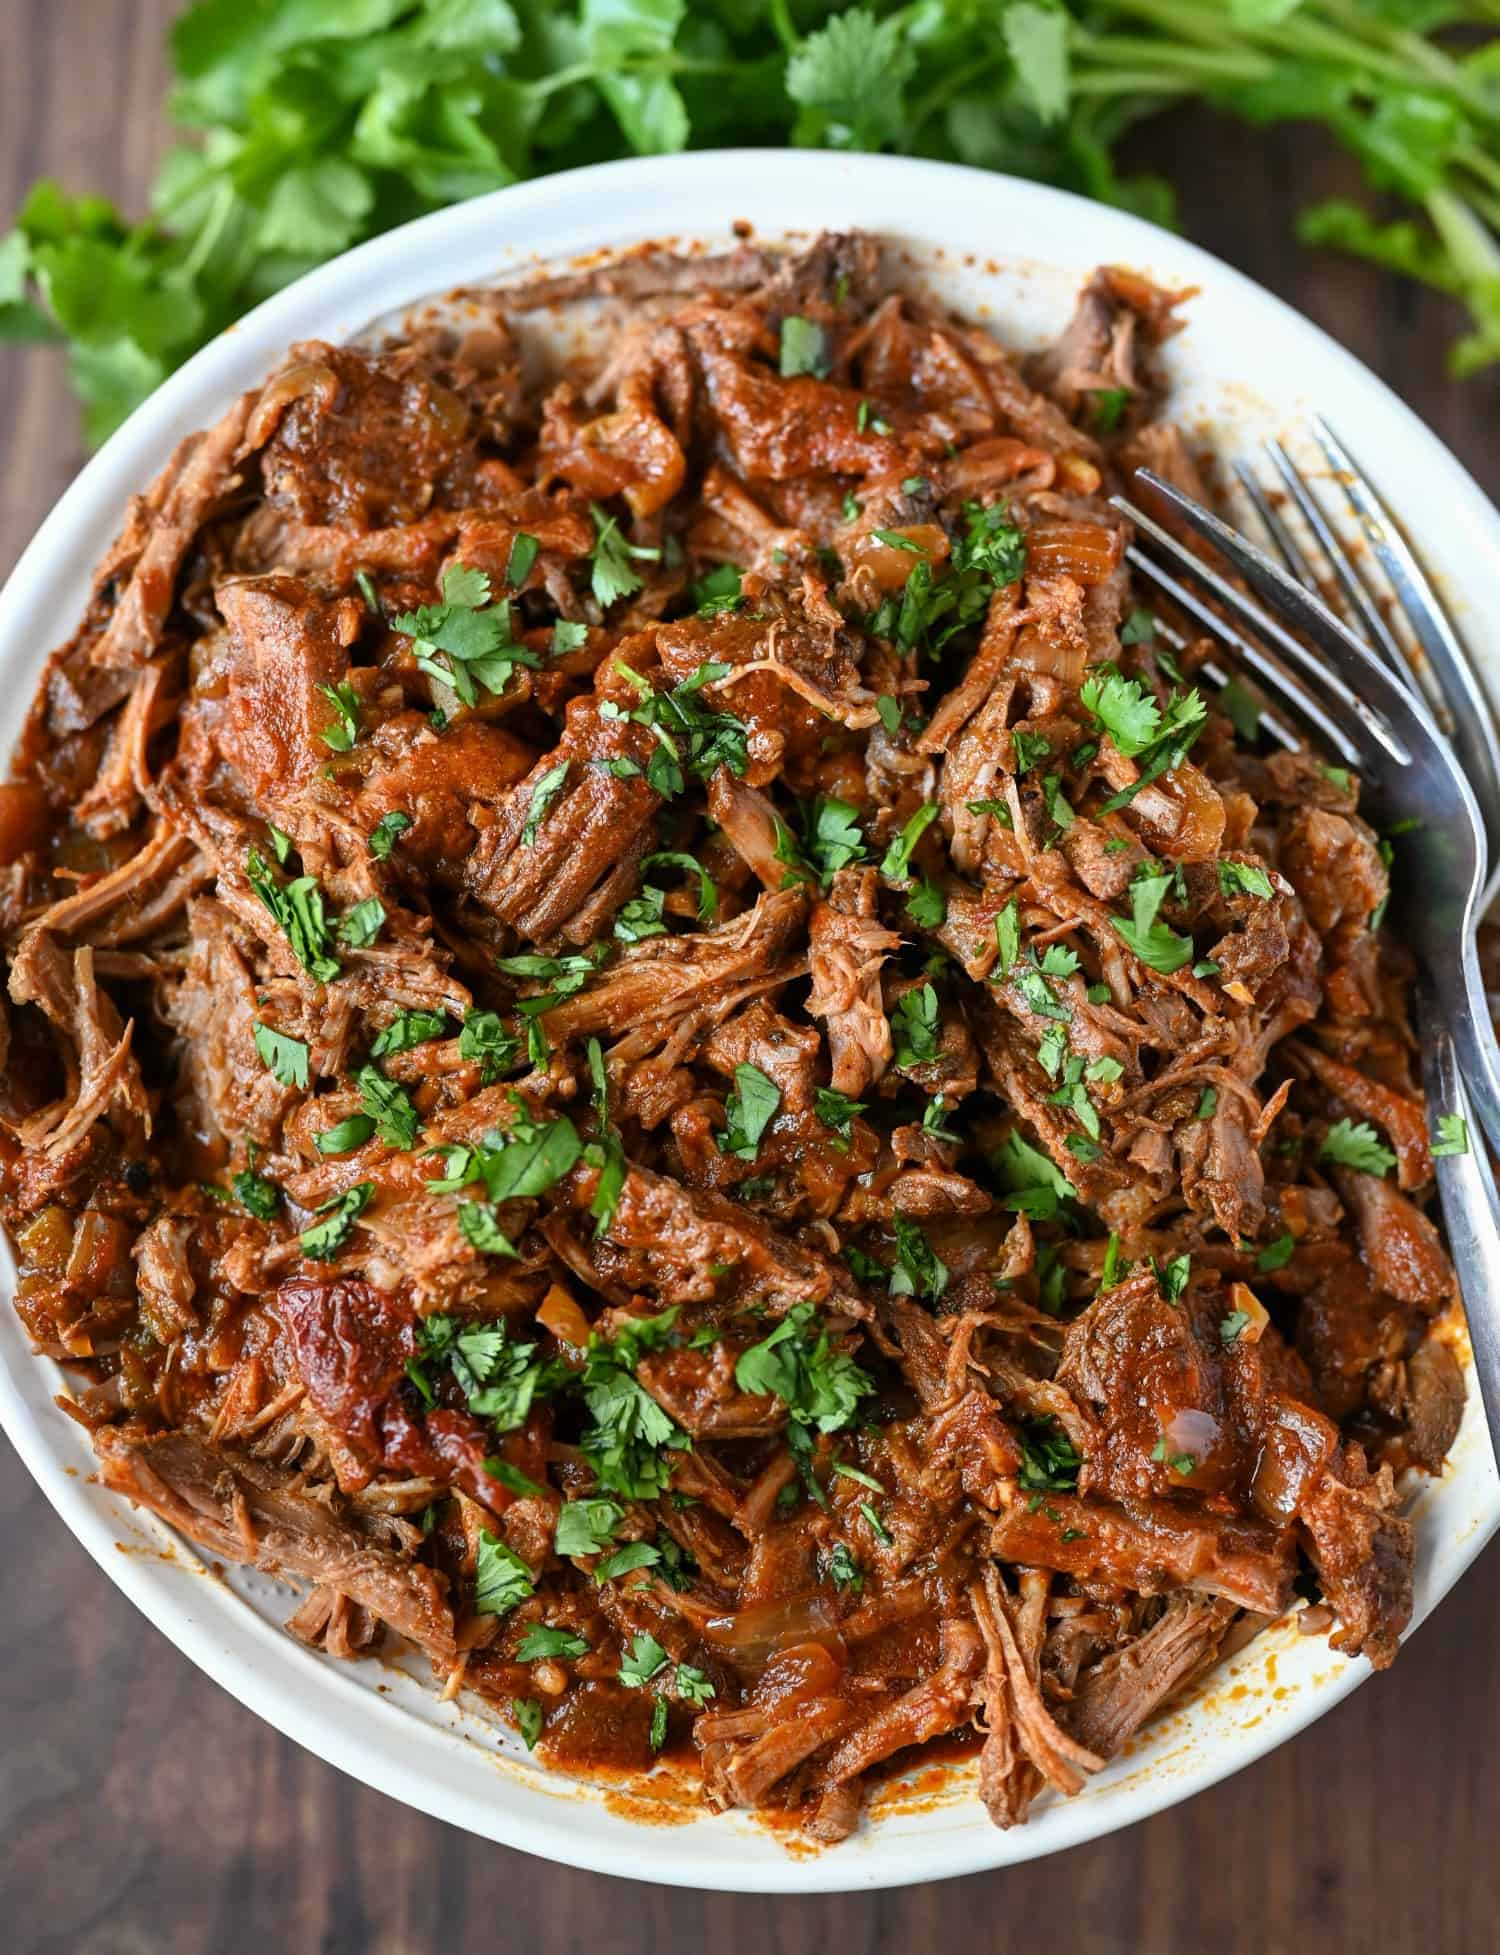 Shredded beef in a white bowl with cilantro sprinkled on top.